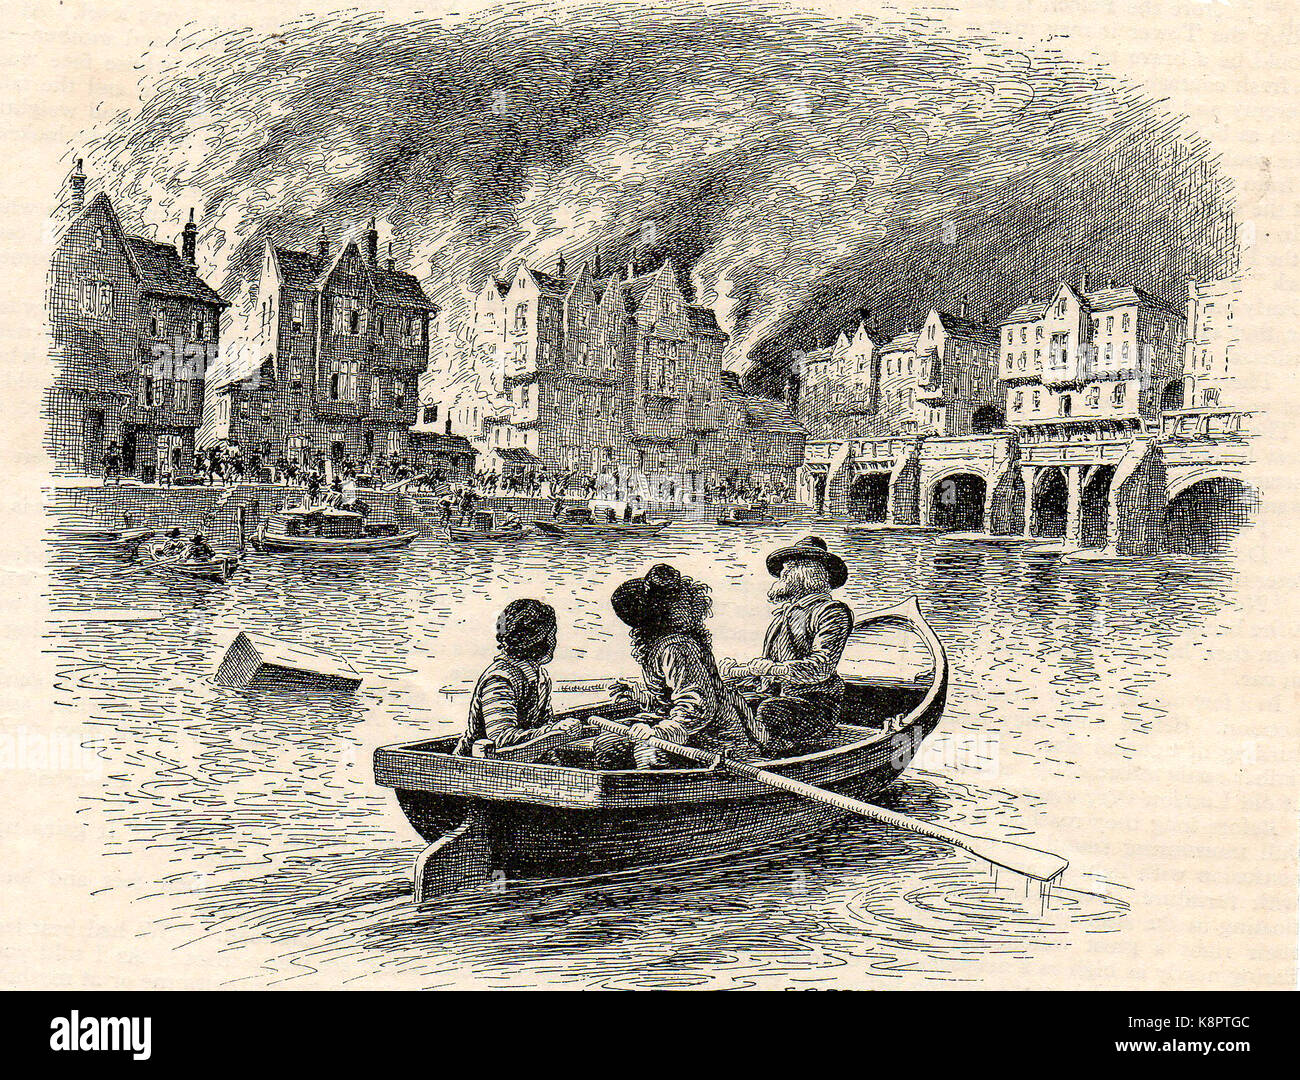 A 1930's illustration of the Great Fire of London (1666) from the river  Thames